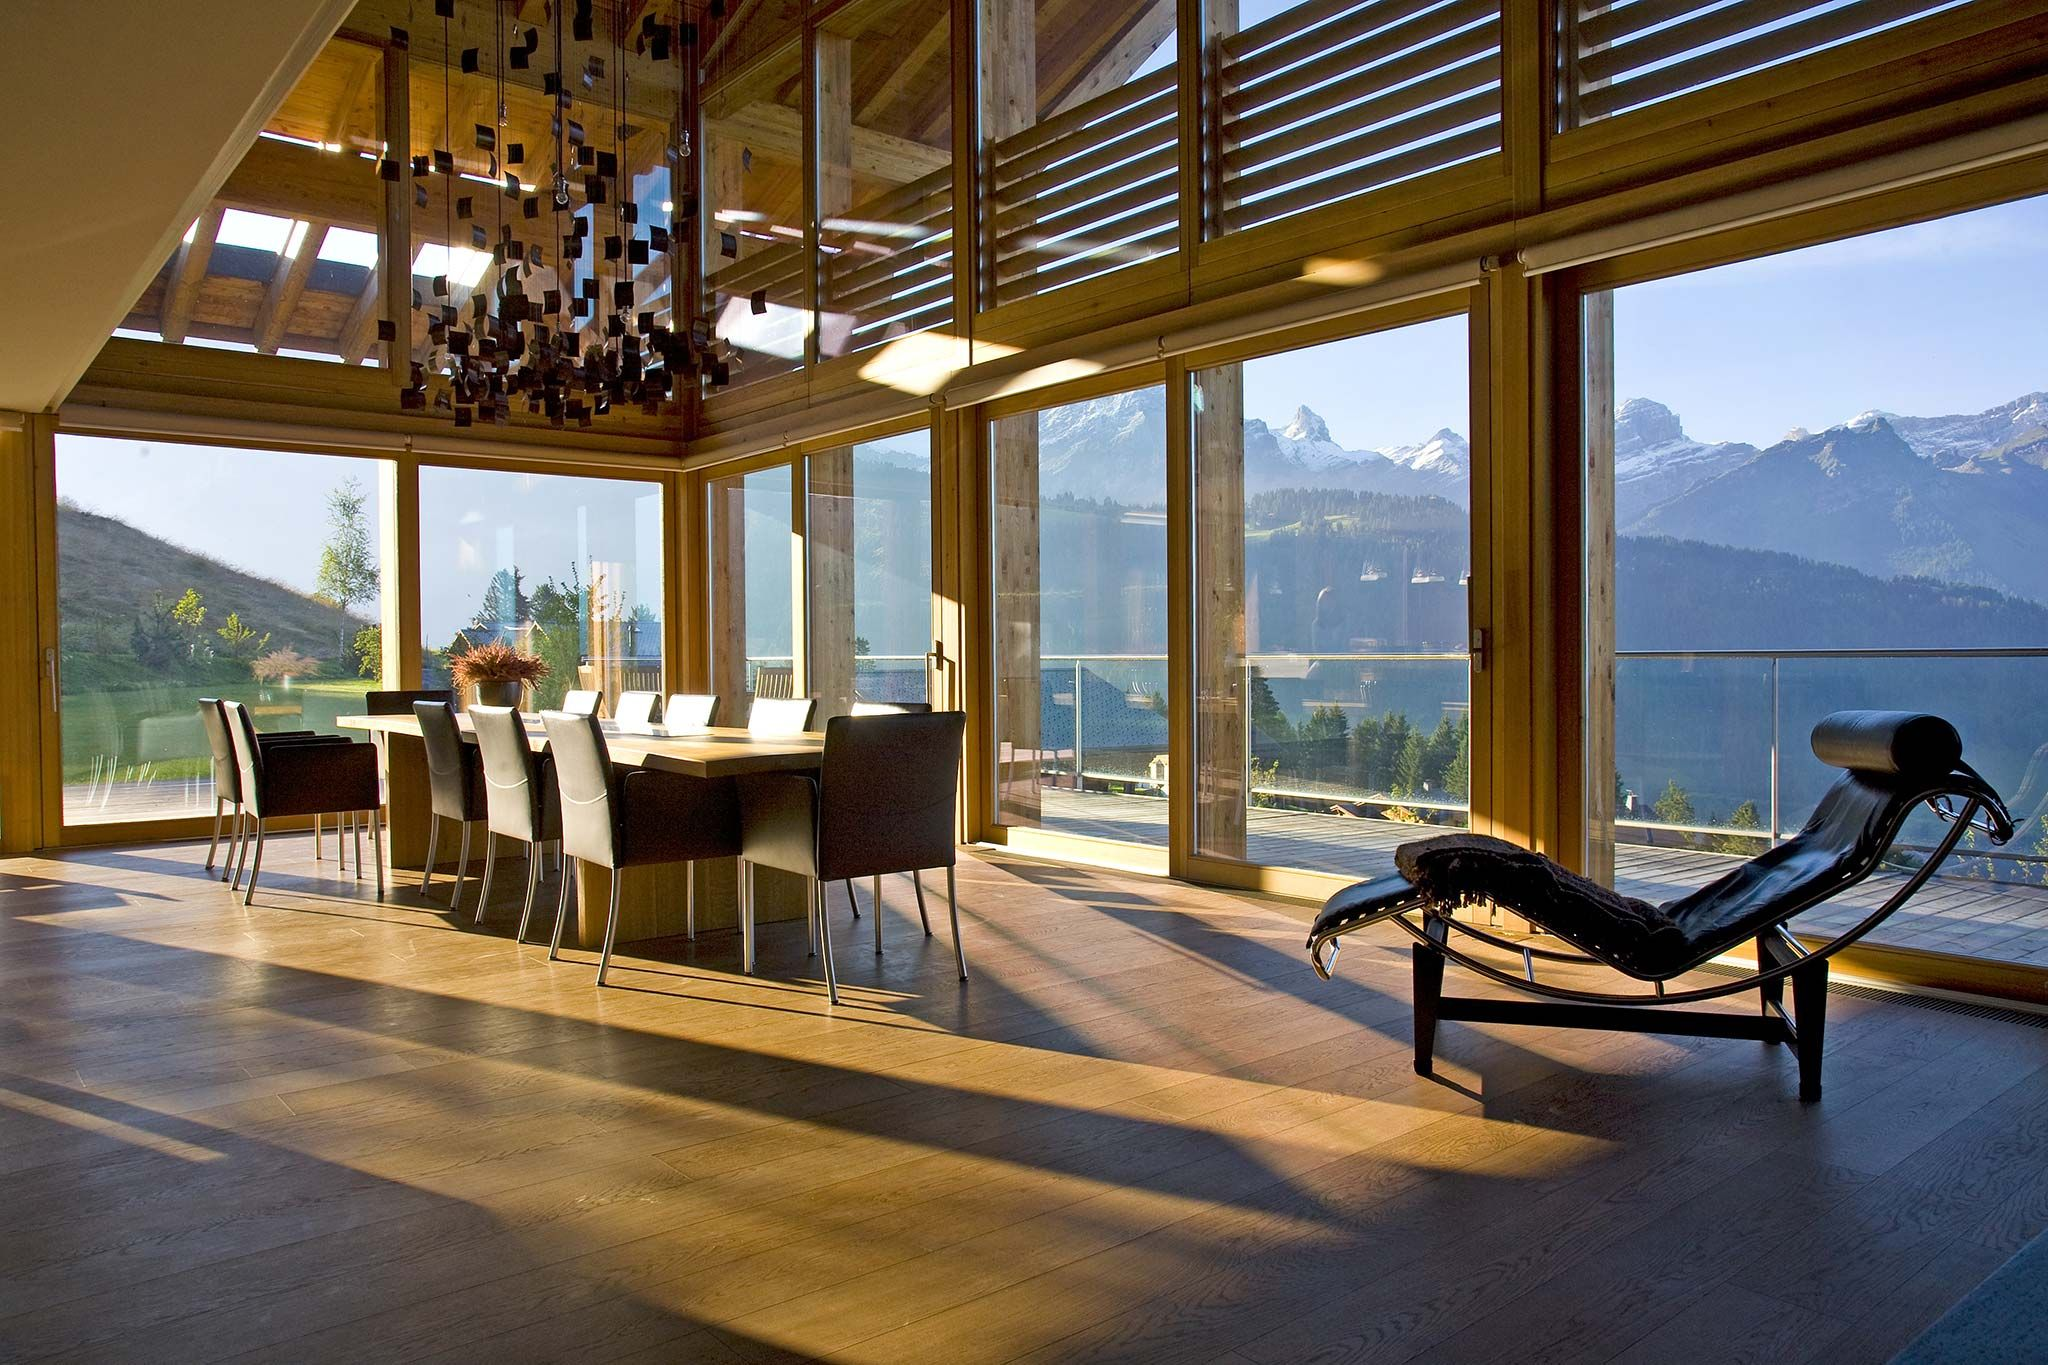 Luxury Interior Styling For Ski Chalet By Callender Howorth